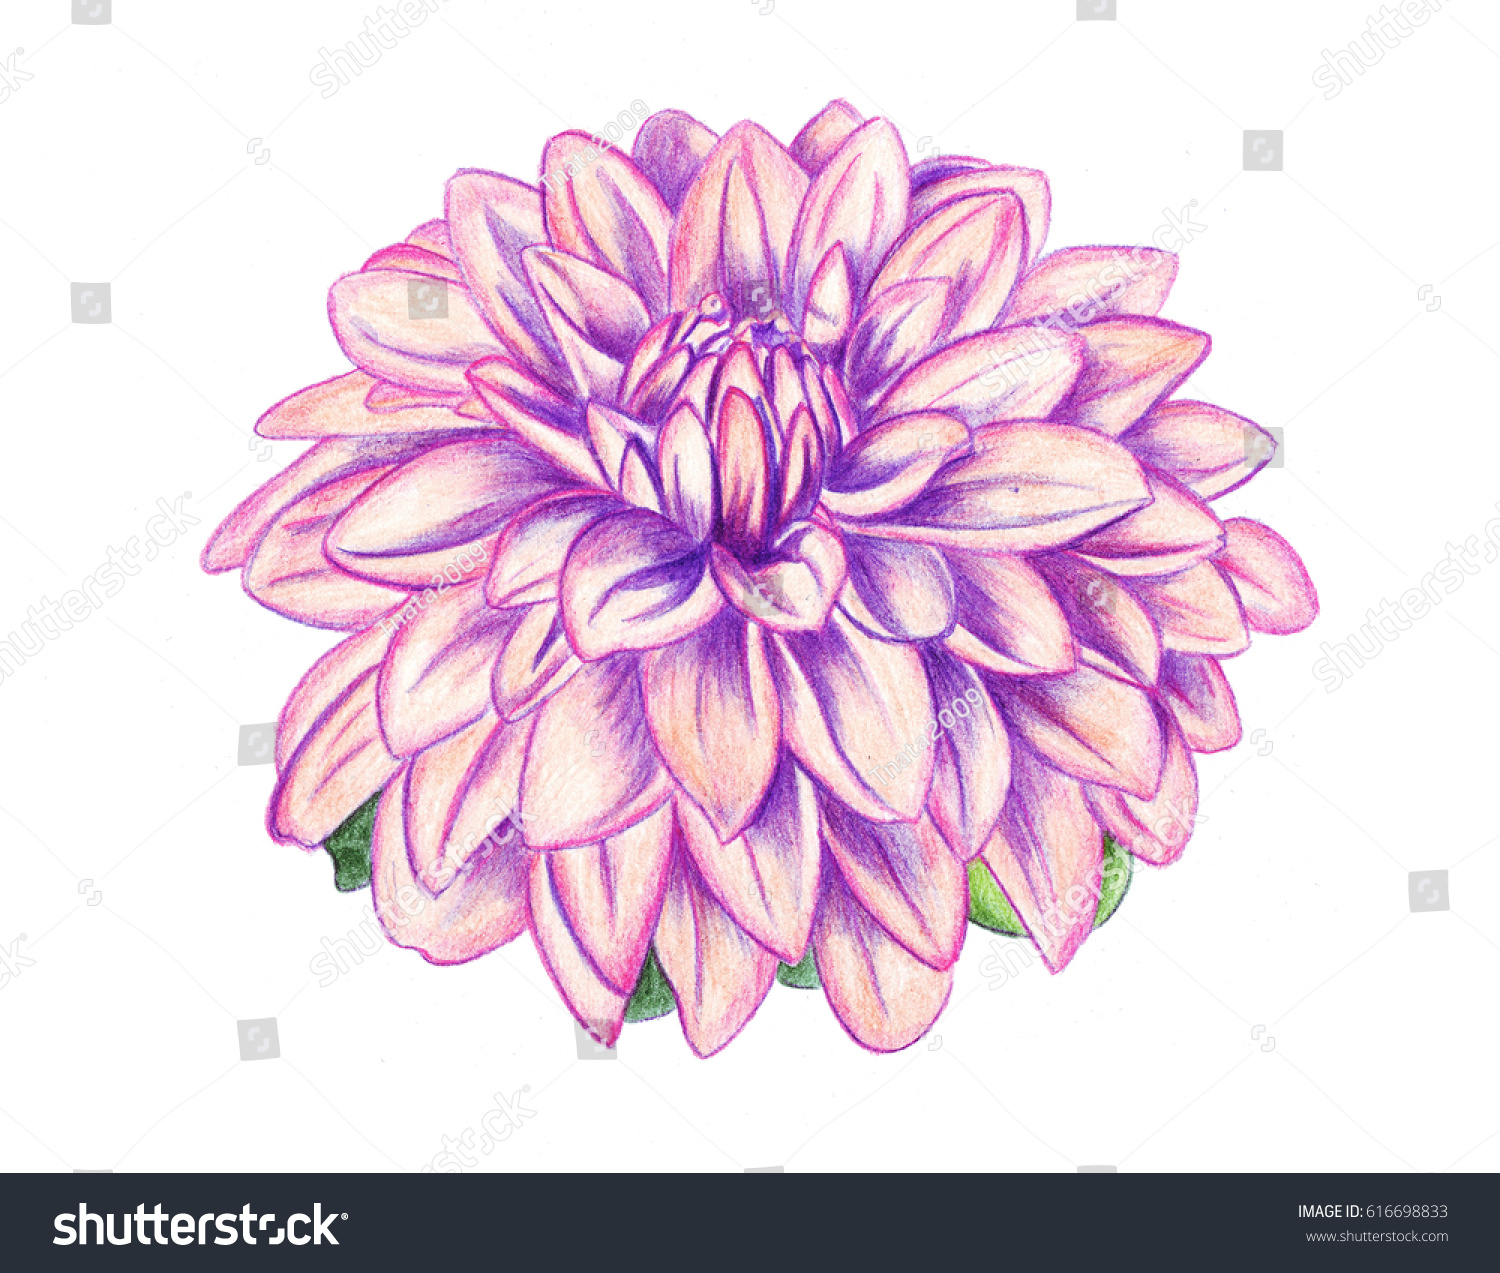 Illustration Drawing Colored Pencils Realistic Dahlia Stock